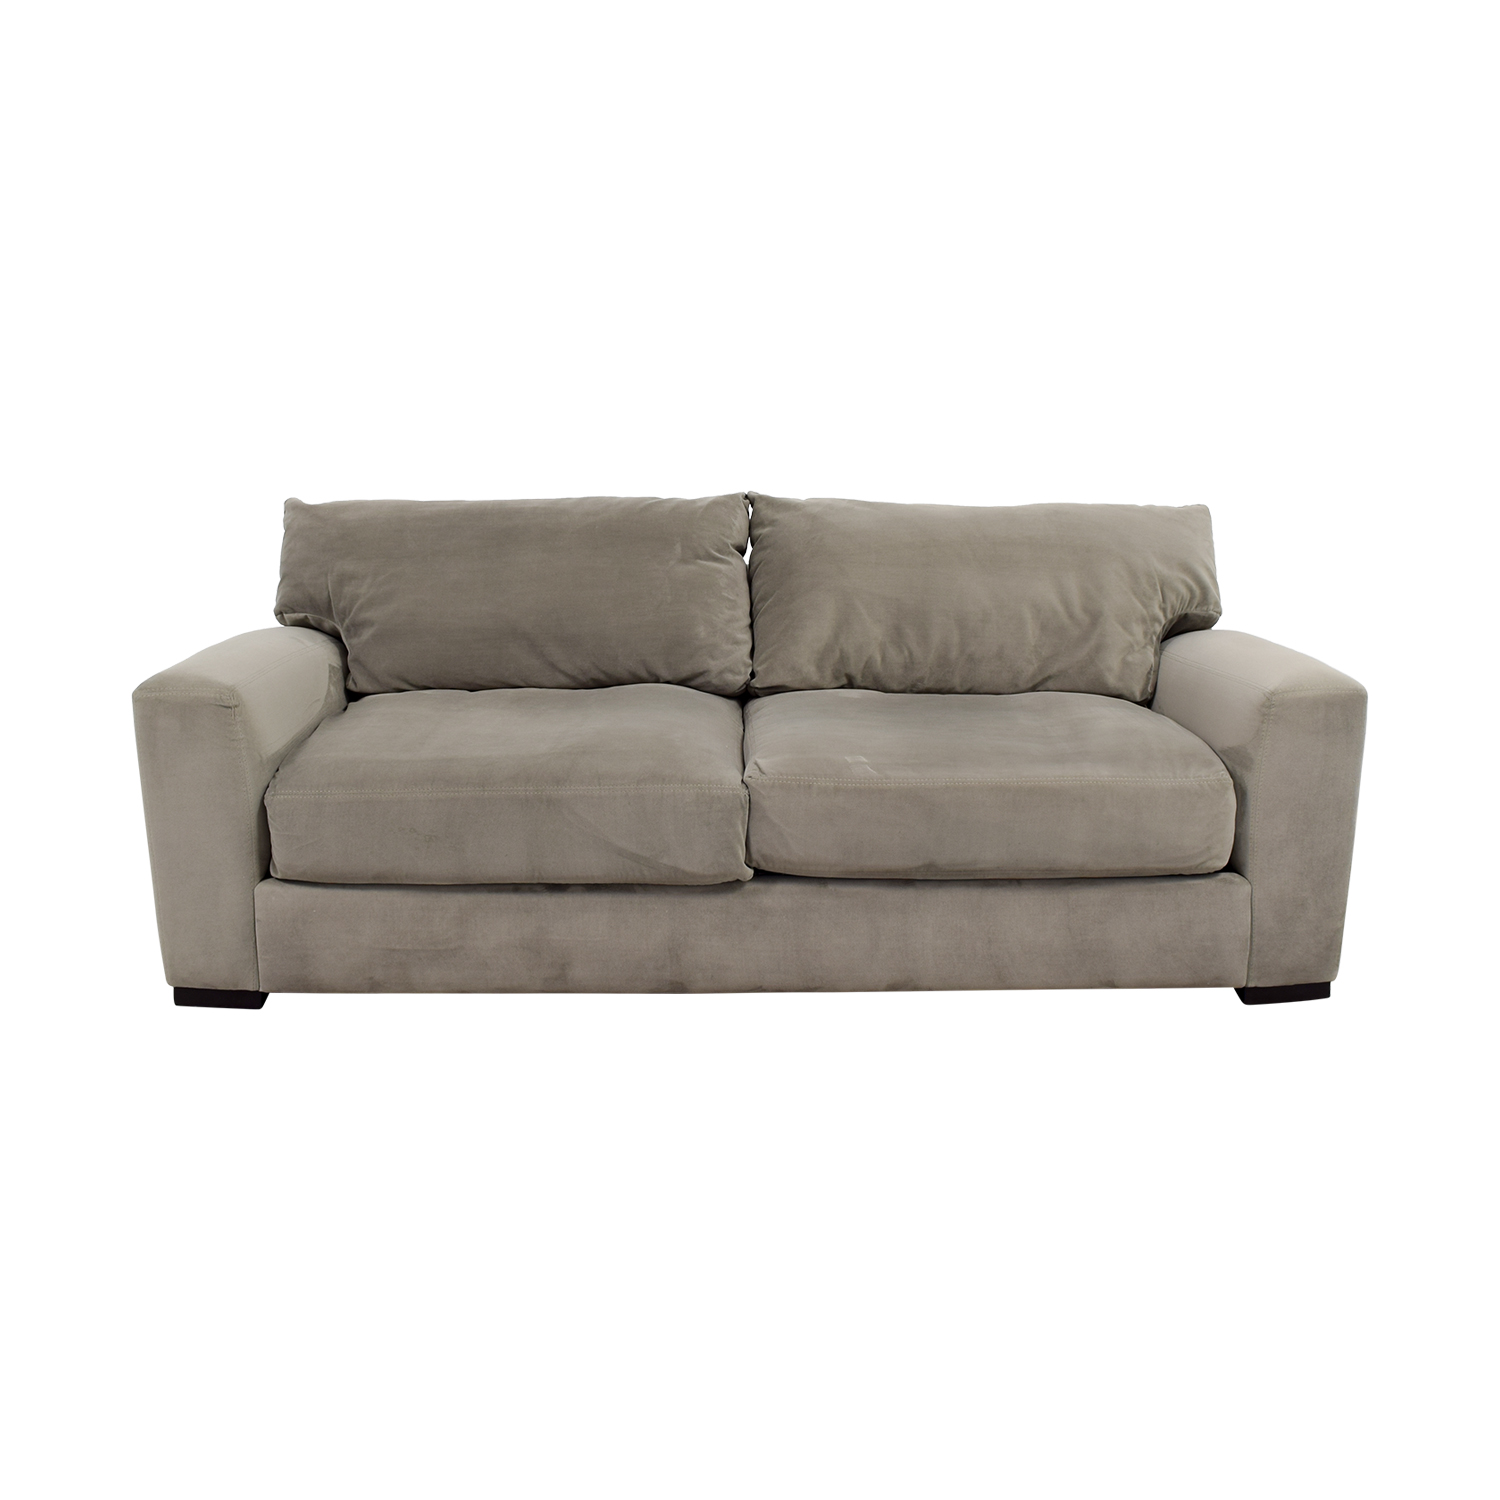 Raymour and Flanigan Grey Carlin Microfiber Sofa sale